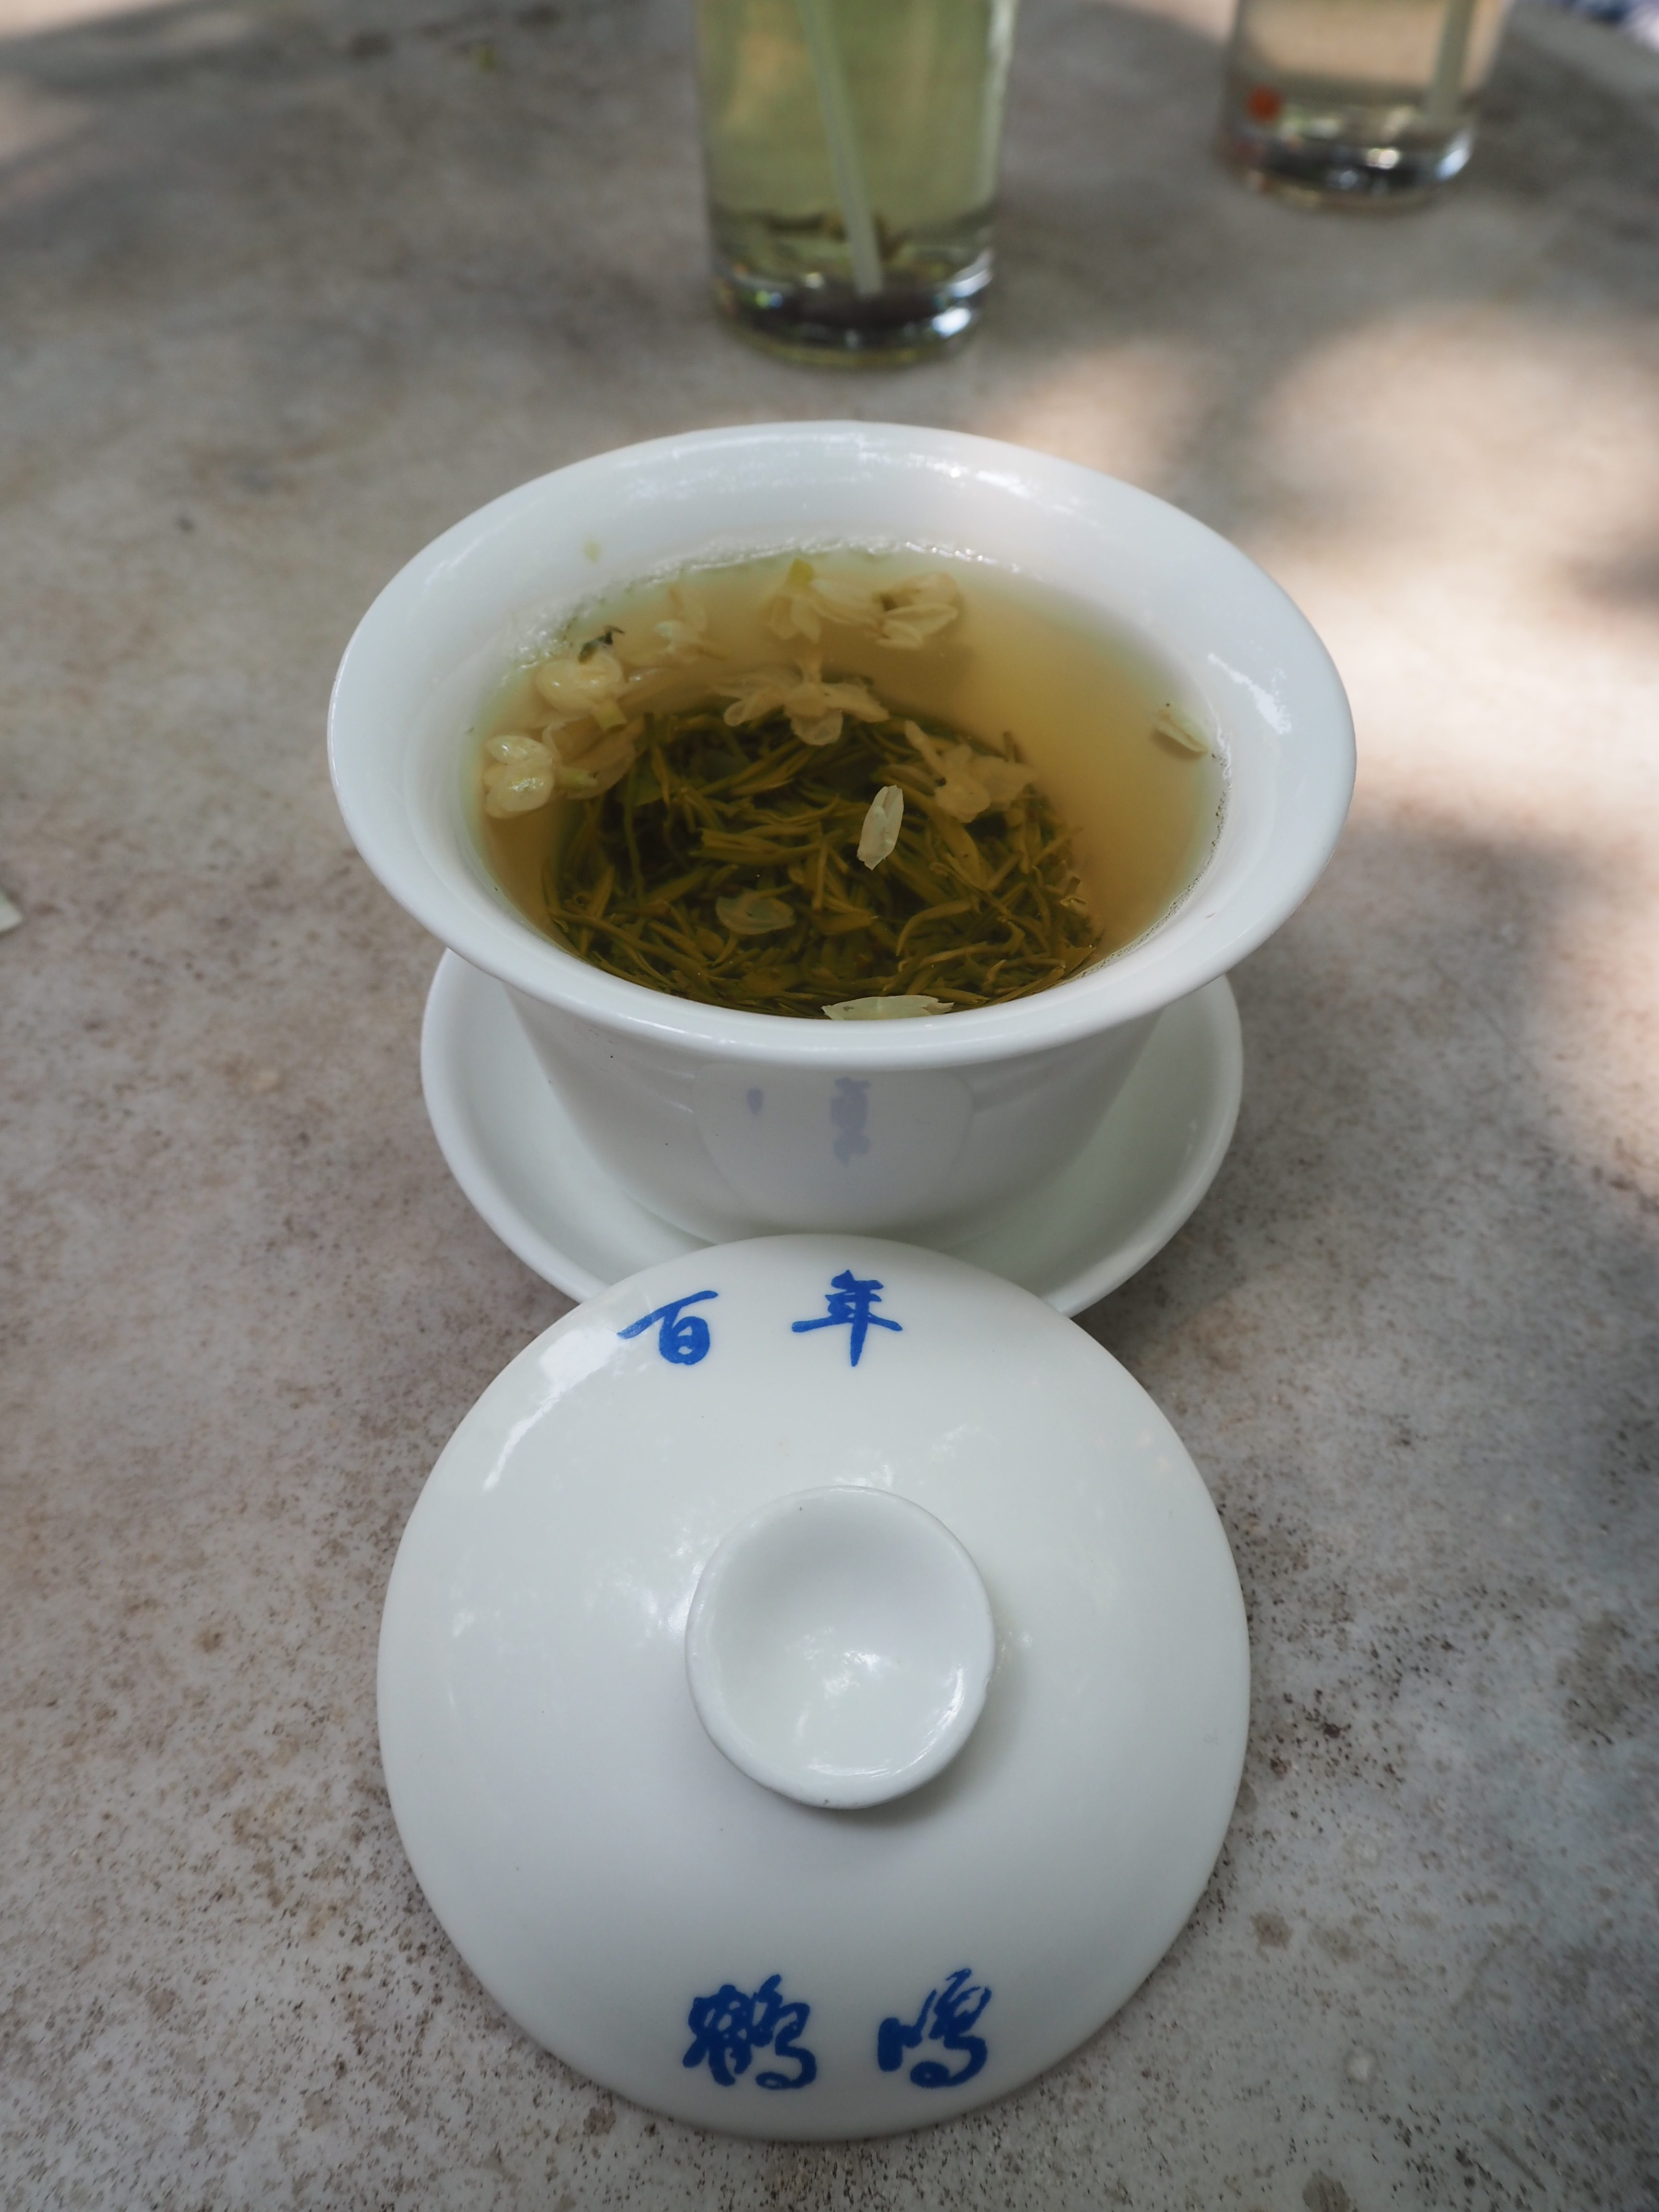 Heming teahouse